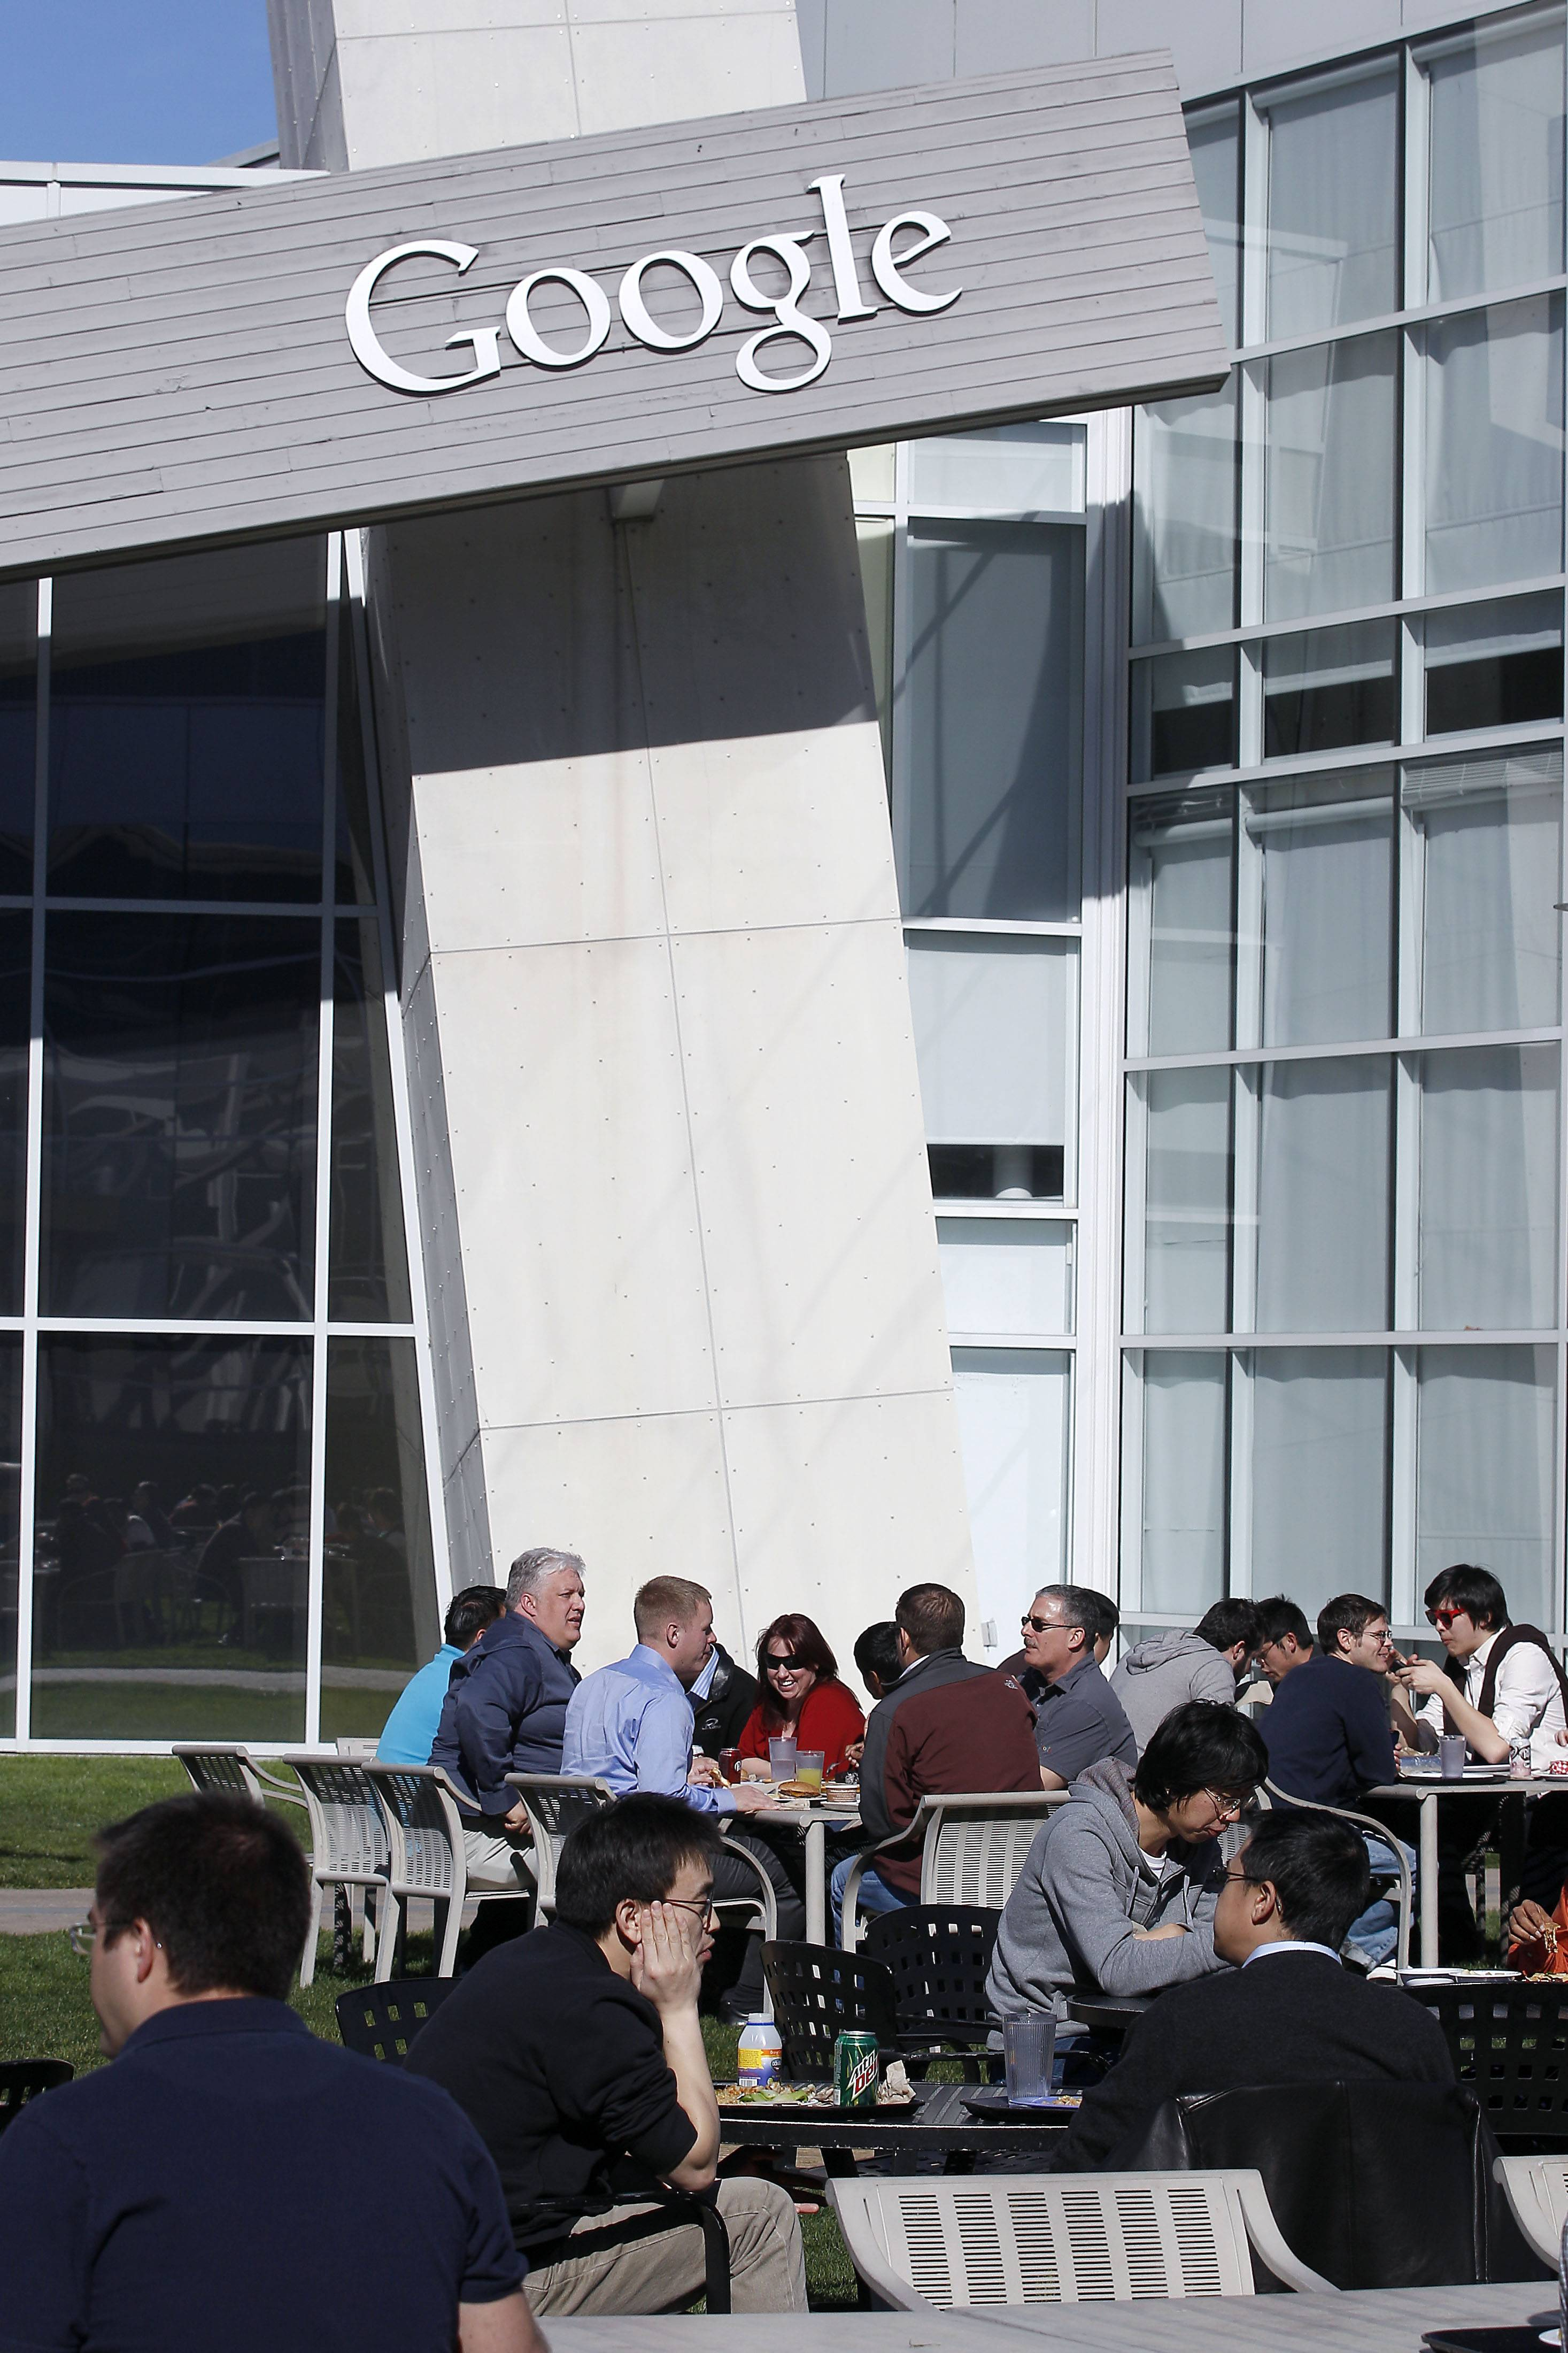 Google Inc. employees sit outside during lunch time at company's headquarters in Mountain View, California. In a groundbreaking disclosure, Google revealed Wednesday how very white and male its workforce is -- just 2 percent of its 50,000 Googlers are black, 3 percent are Hispanic, and 30 percent are women.